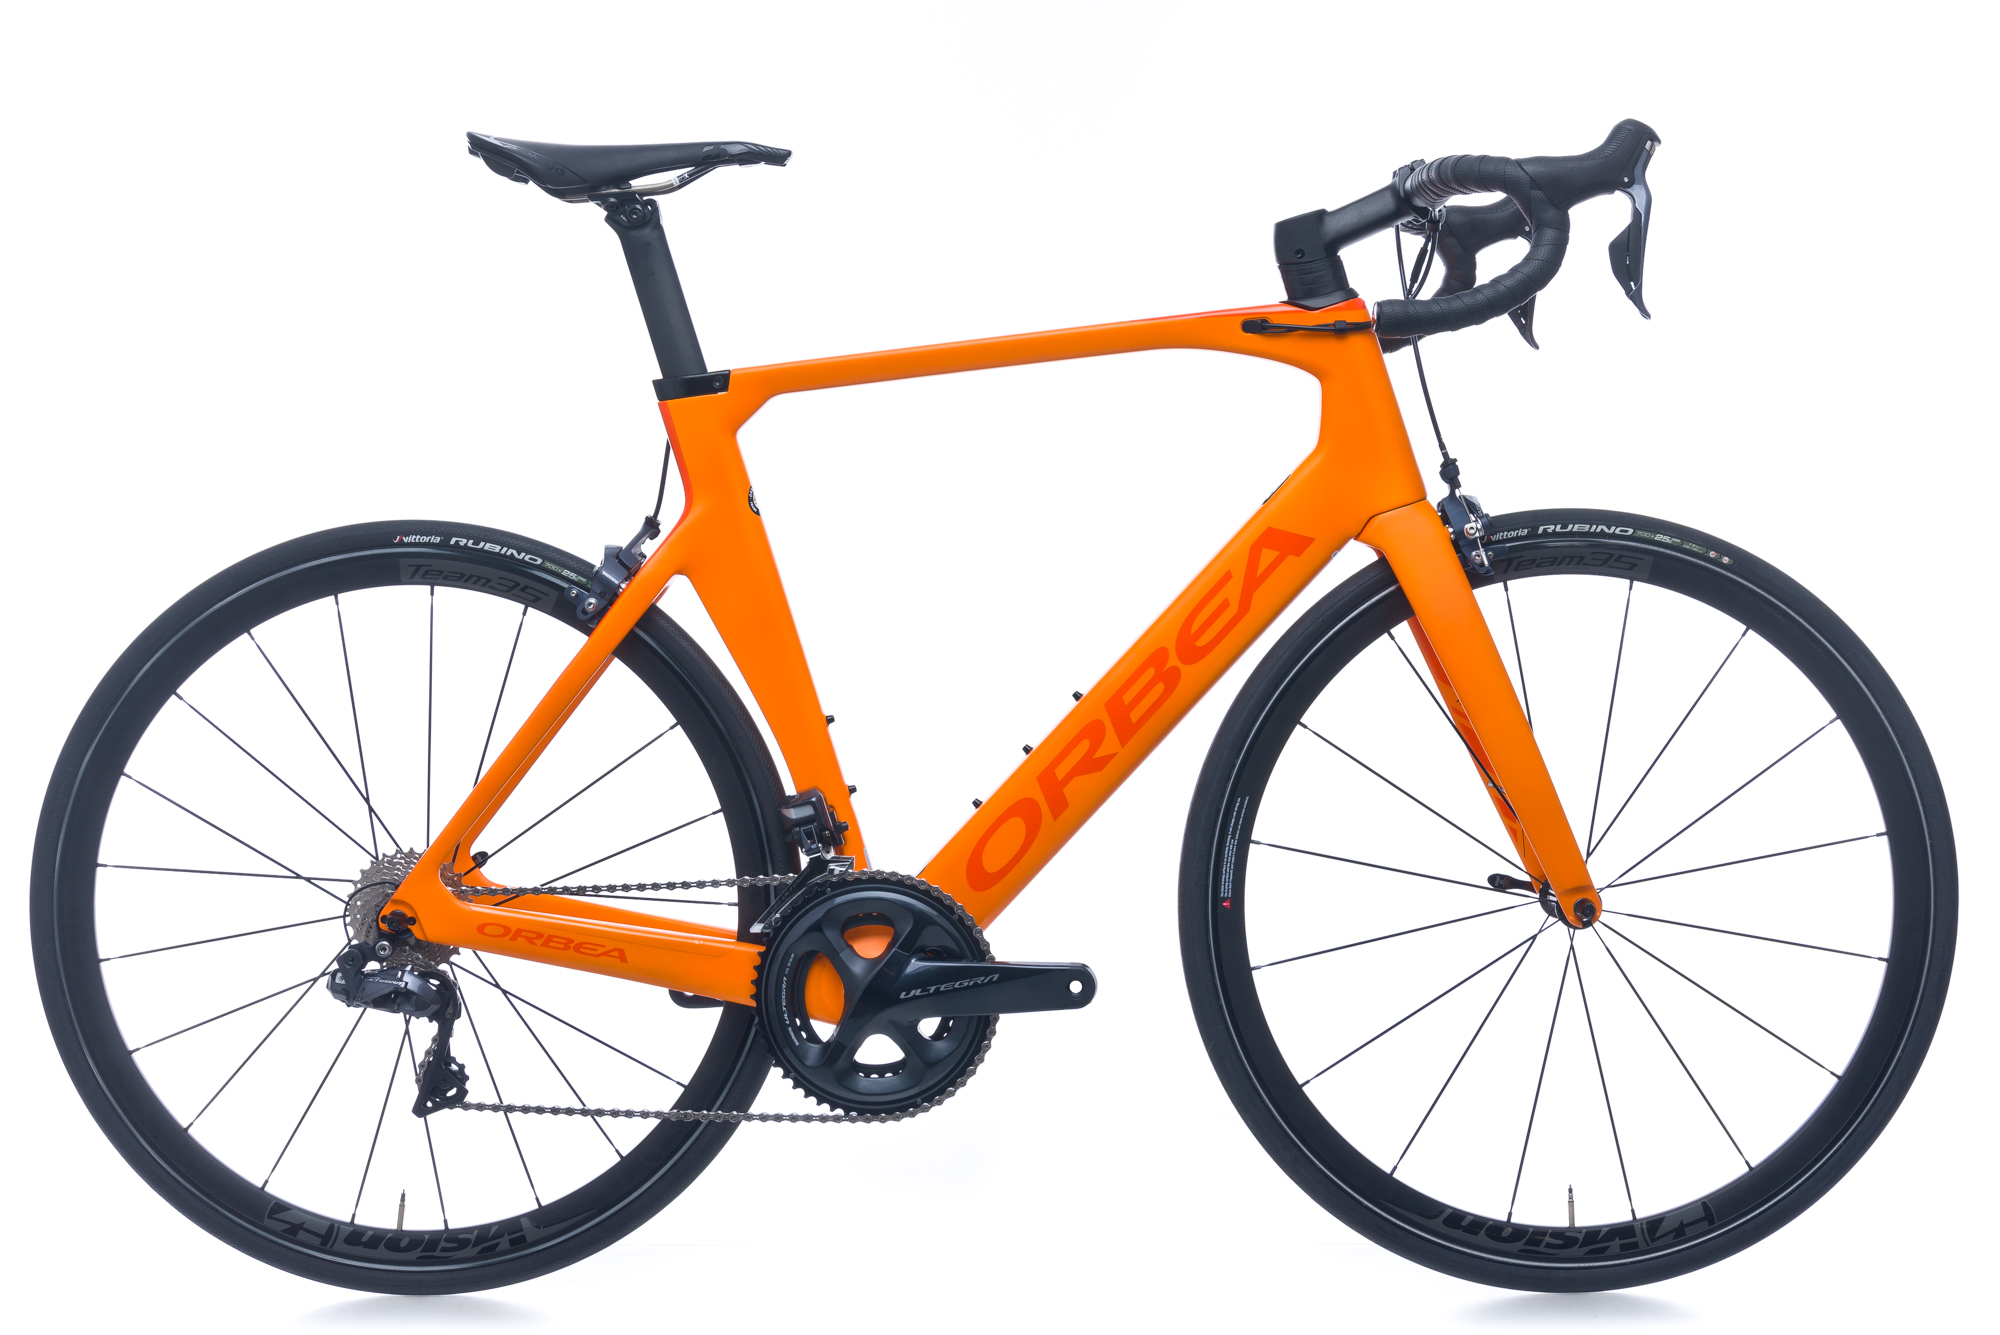 10f44fb80 Details about 2018 Orbea Orca Aero M20i Team Road Bike 57cm Large Carbon  Shimano Ultegra Di2